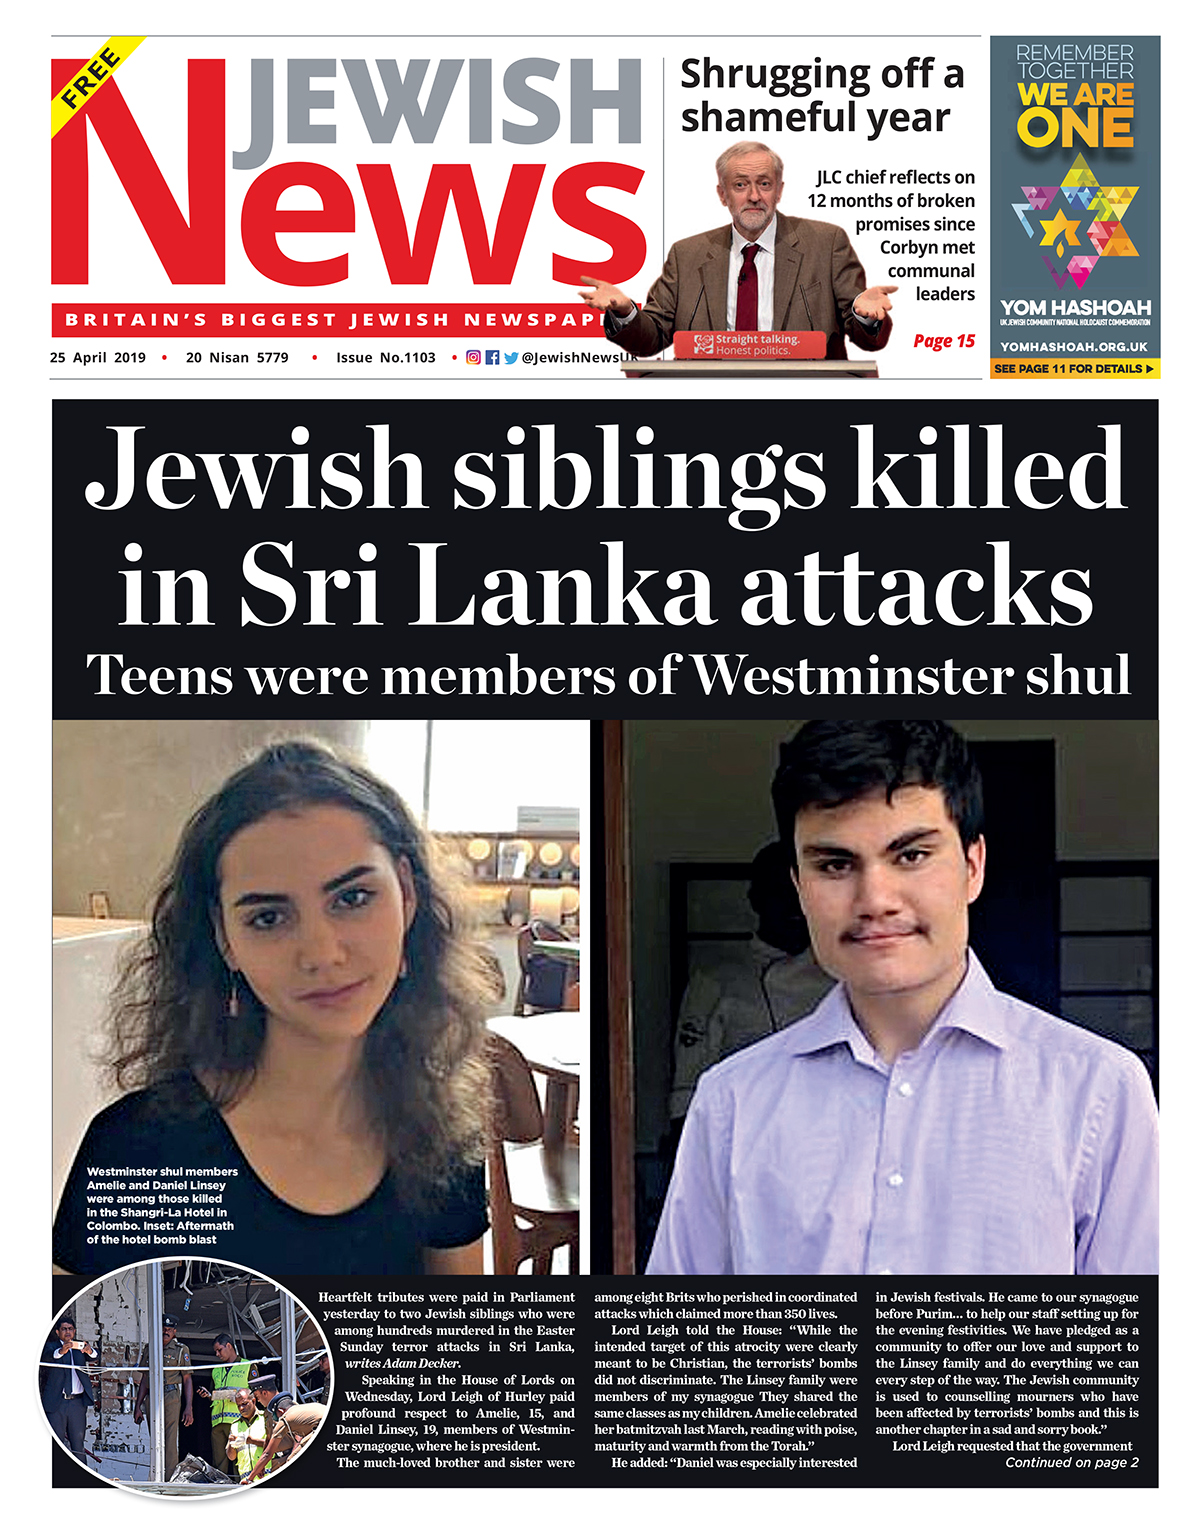 Teenagers Daniel and Amelie Linsey were members of Westminster synagogue, and were among the eight Brits killed during the Easter Sunday atrocity